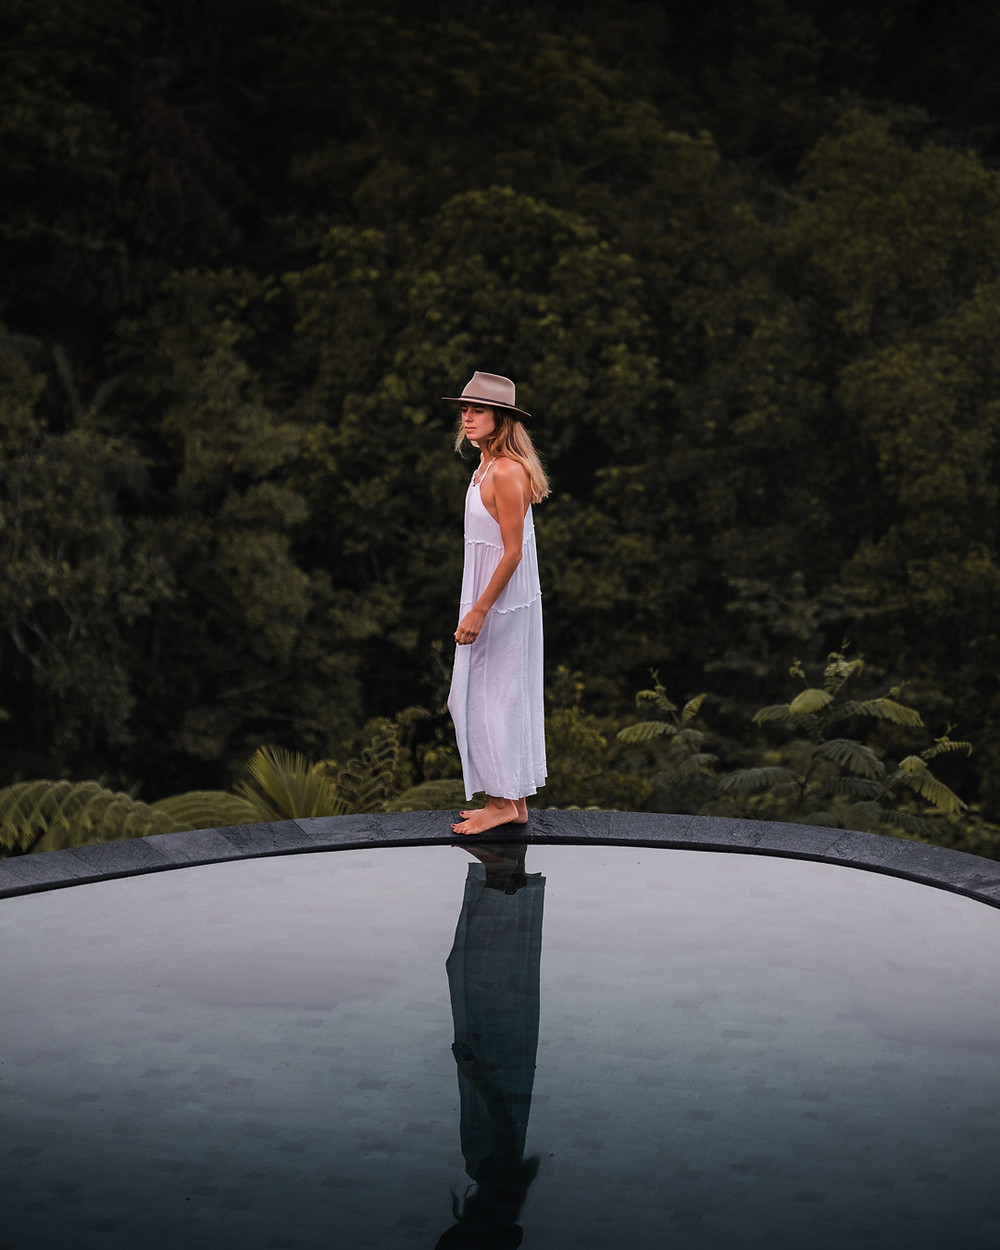 5 hotels with the best pools in Bali